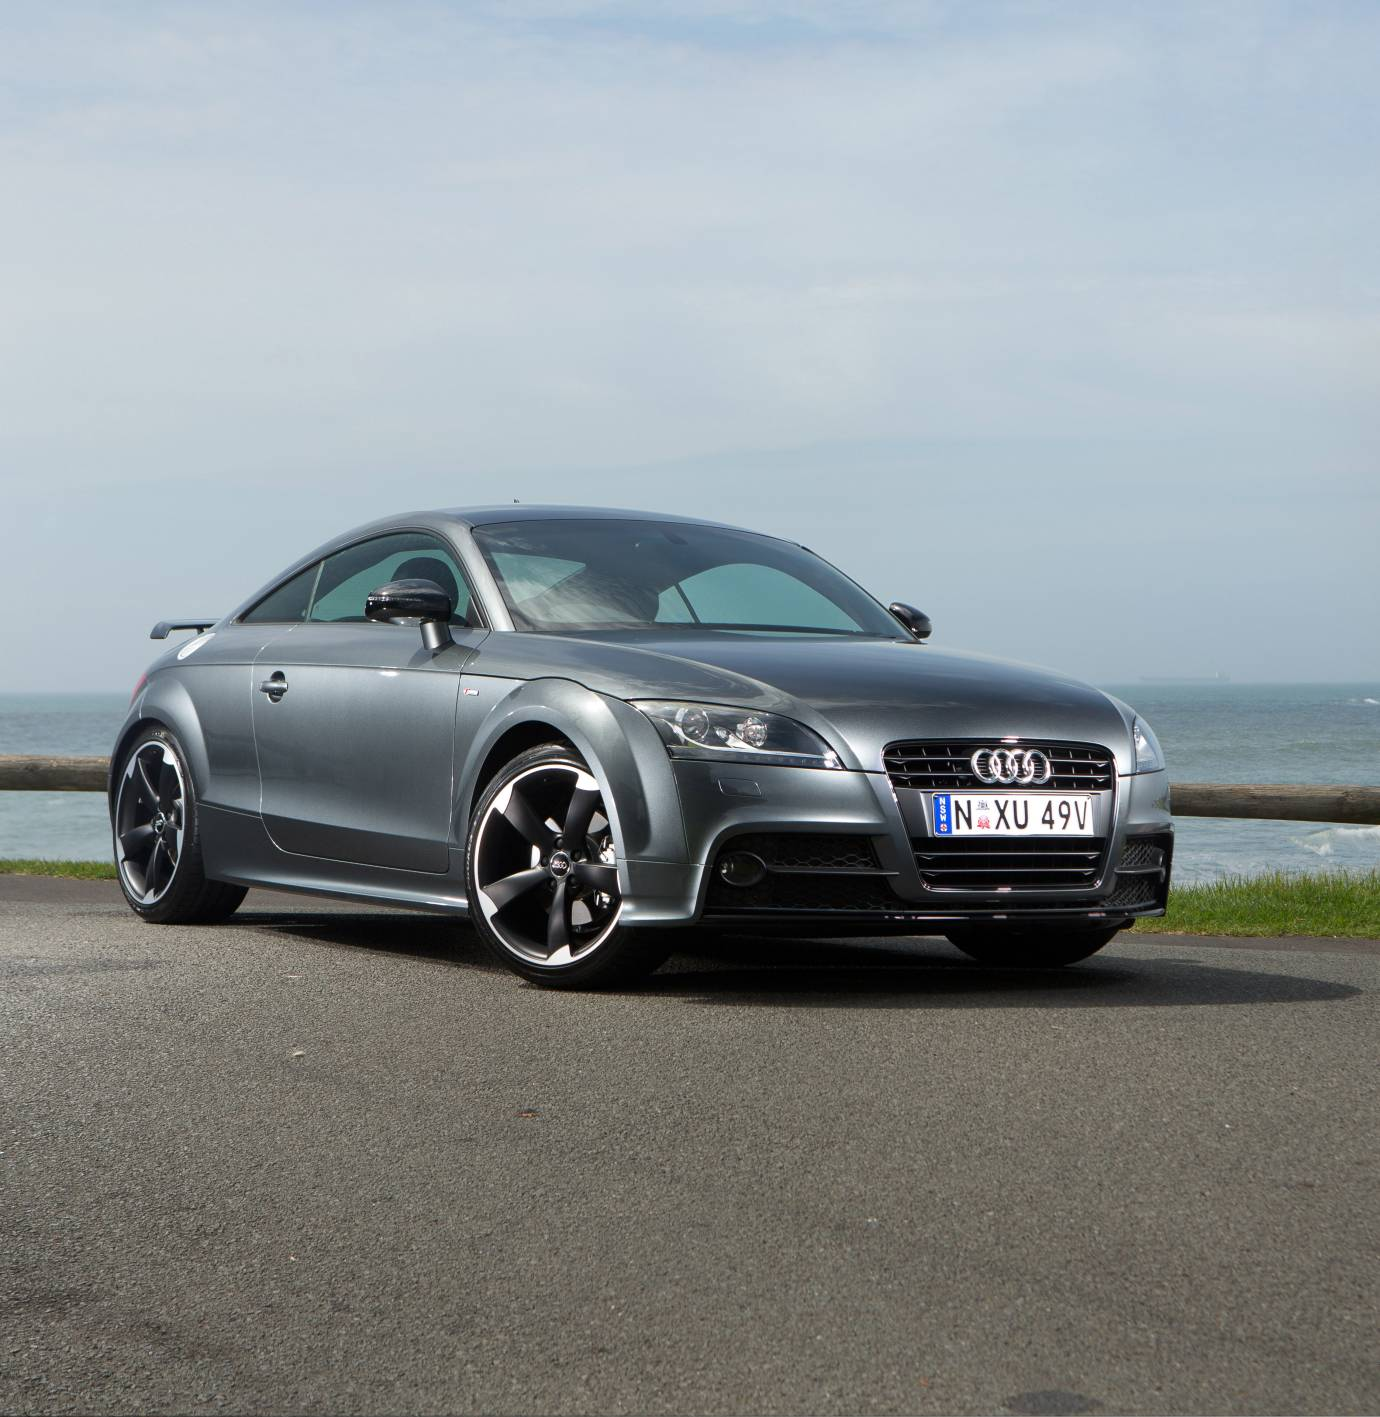 News: Audi TT S Line Competition Package On Sale